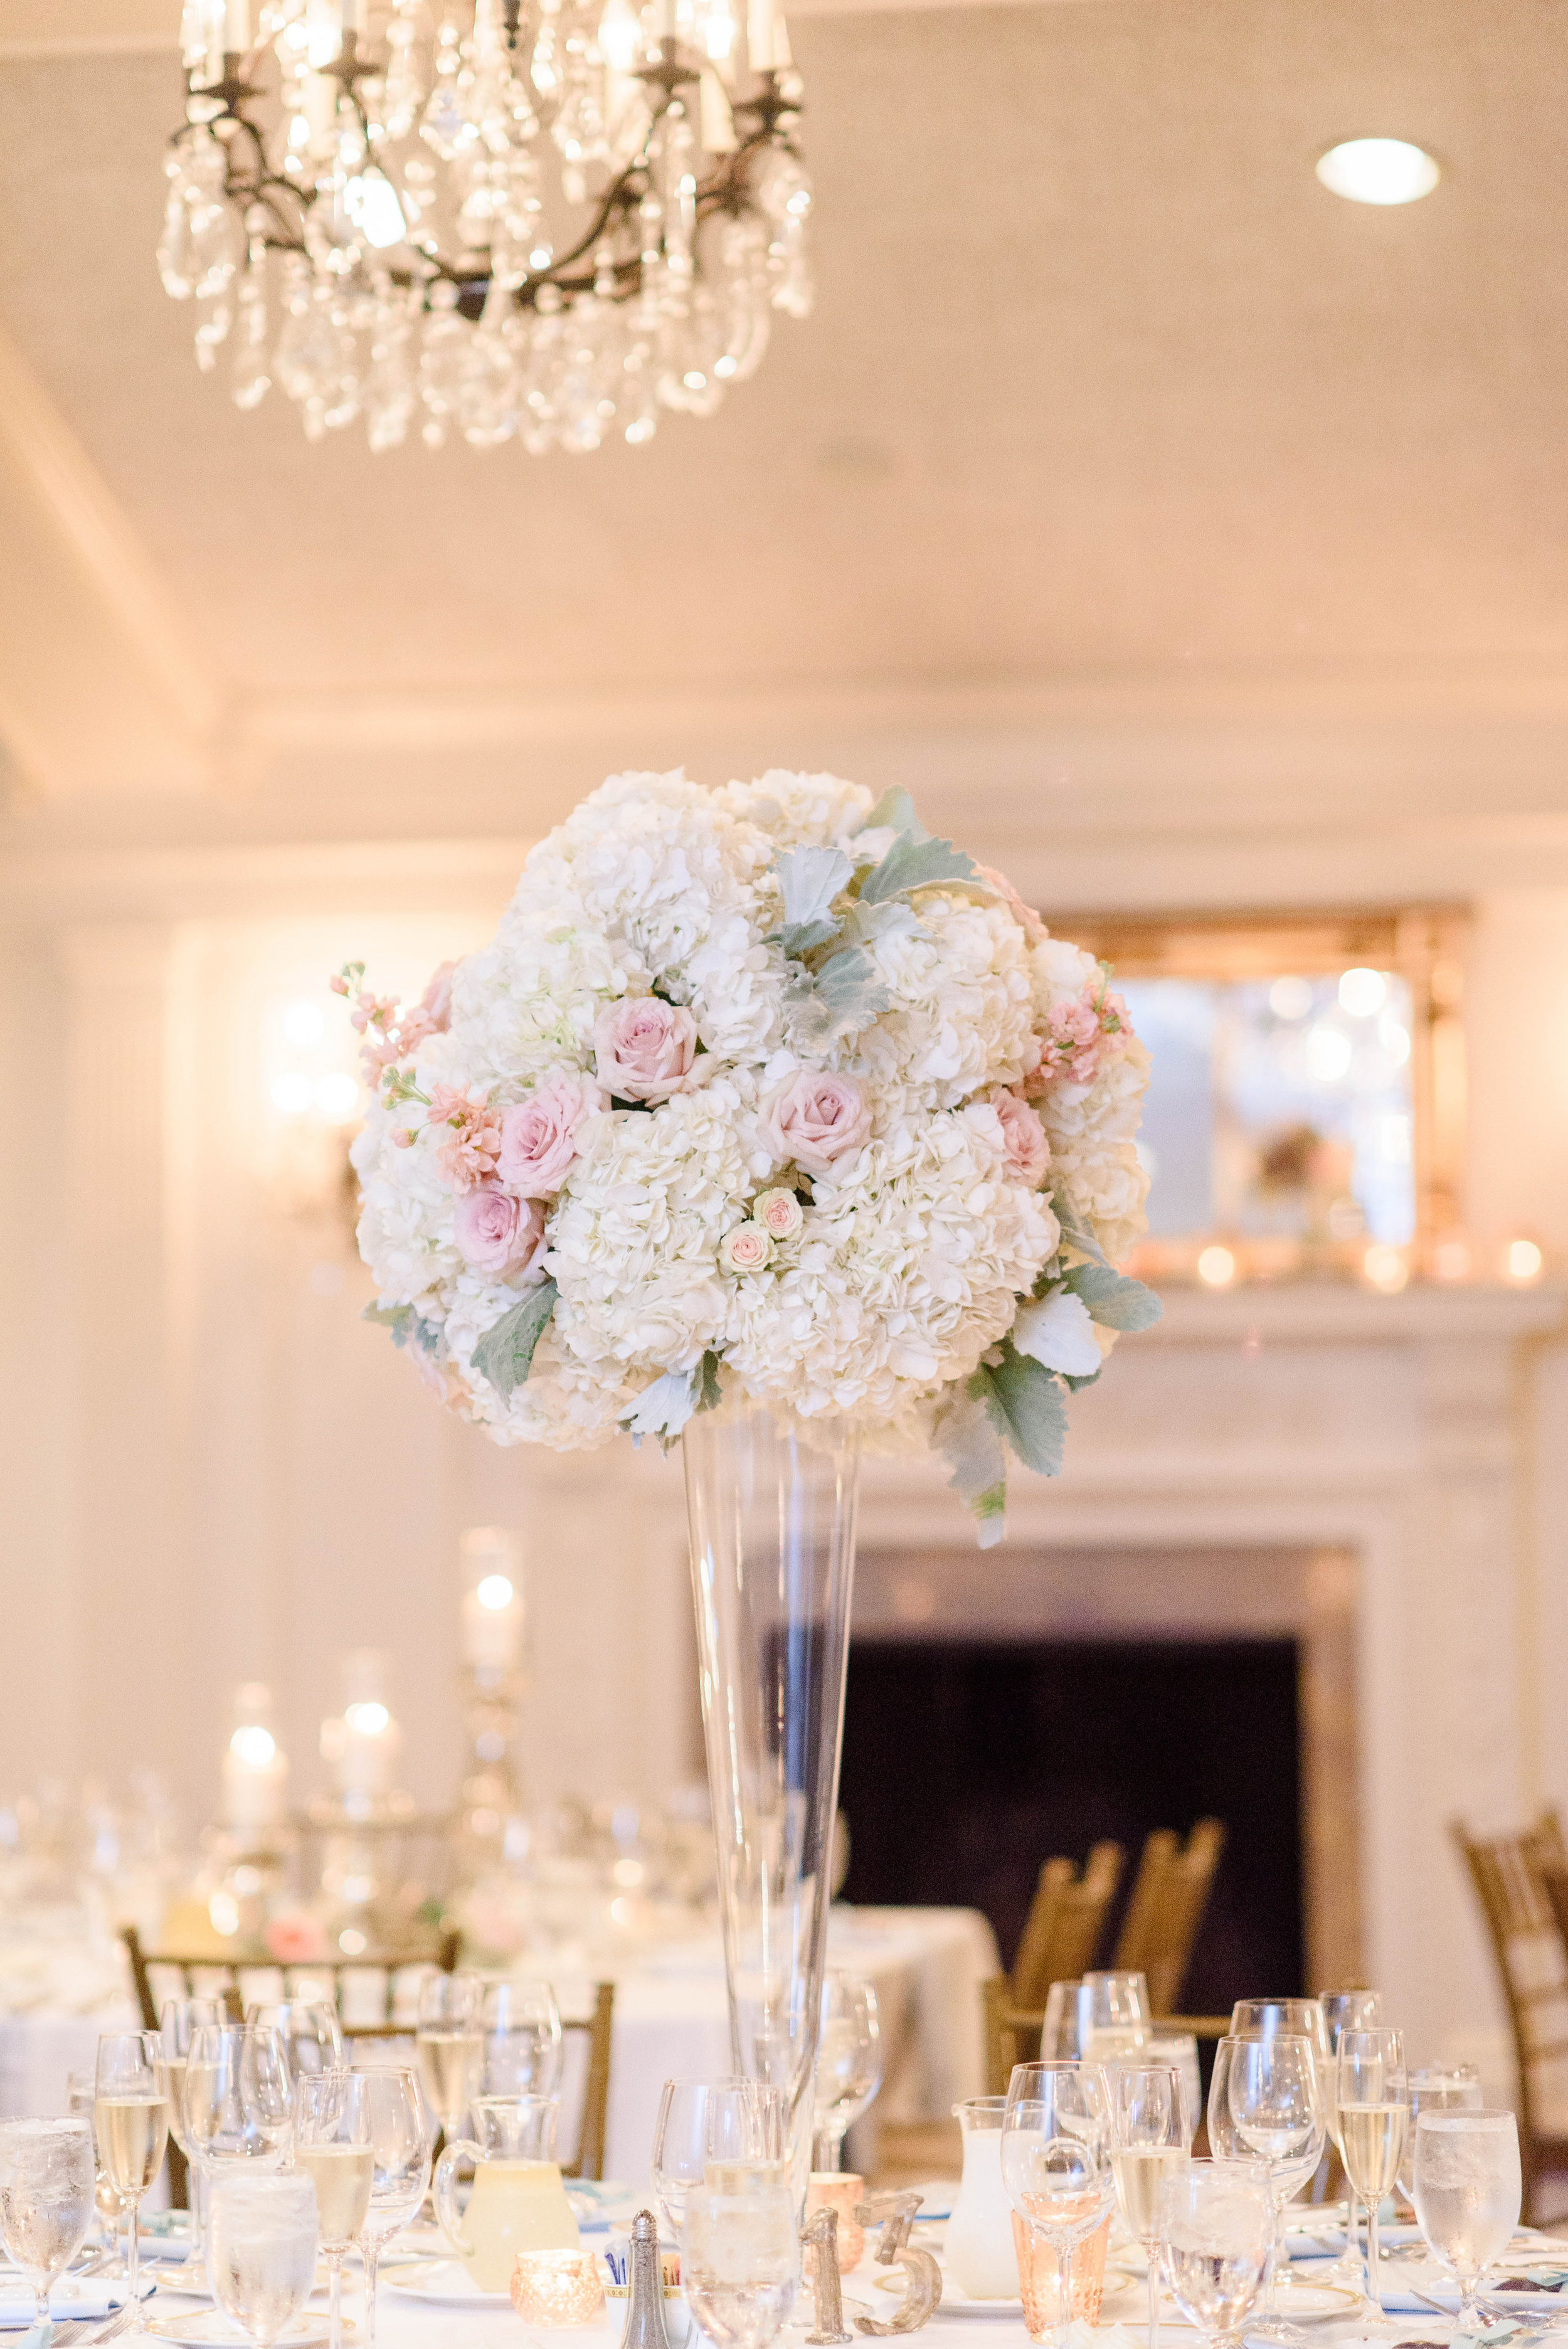 Tall wedding centerpieces with pastel flowers for wedding table for elegant Greek wedding held in Pittsburgh at Oakmont Country Club. See more beautiful details at exhale-events.com!